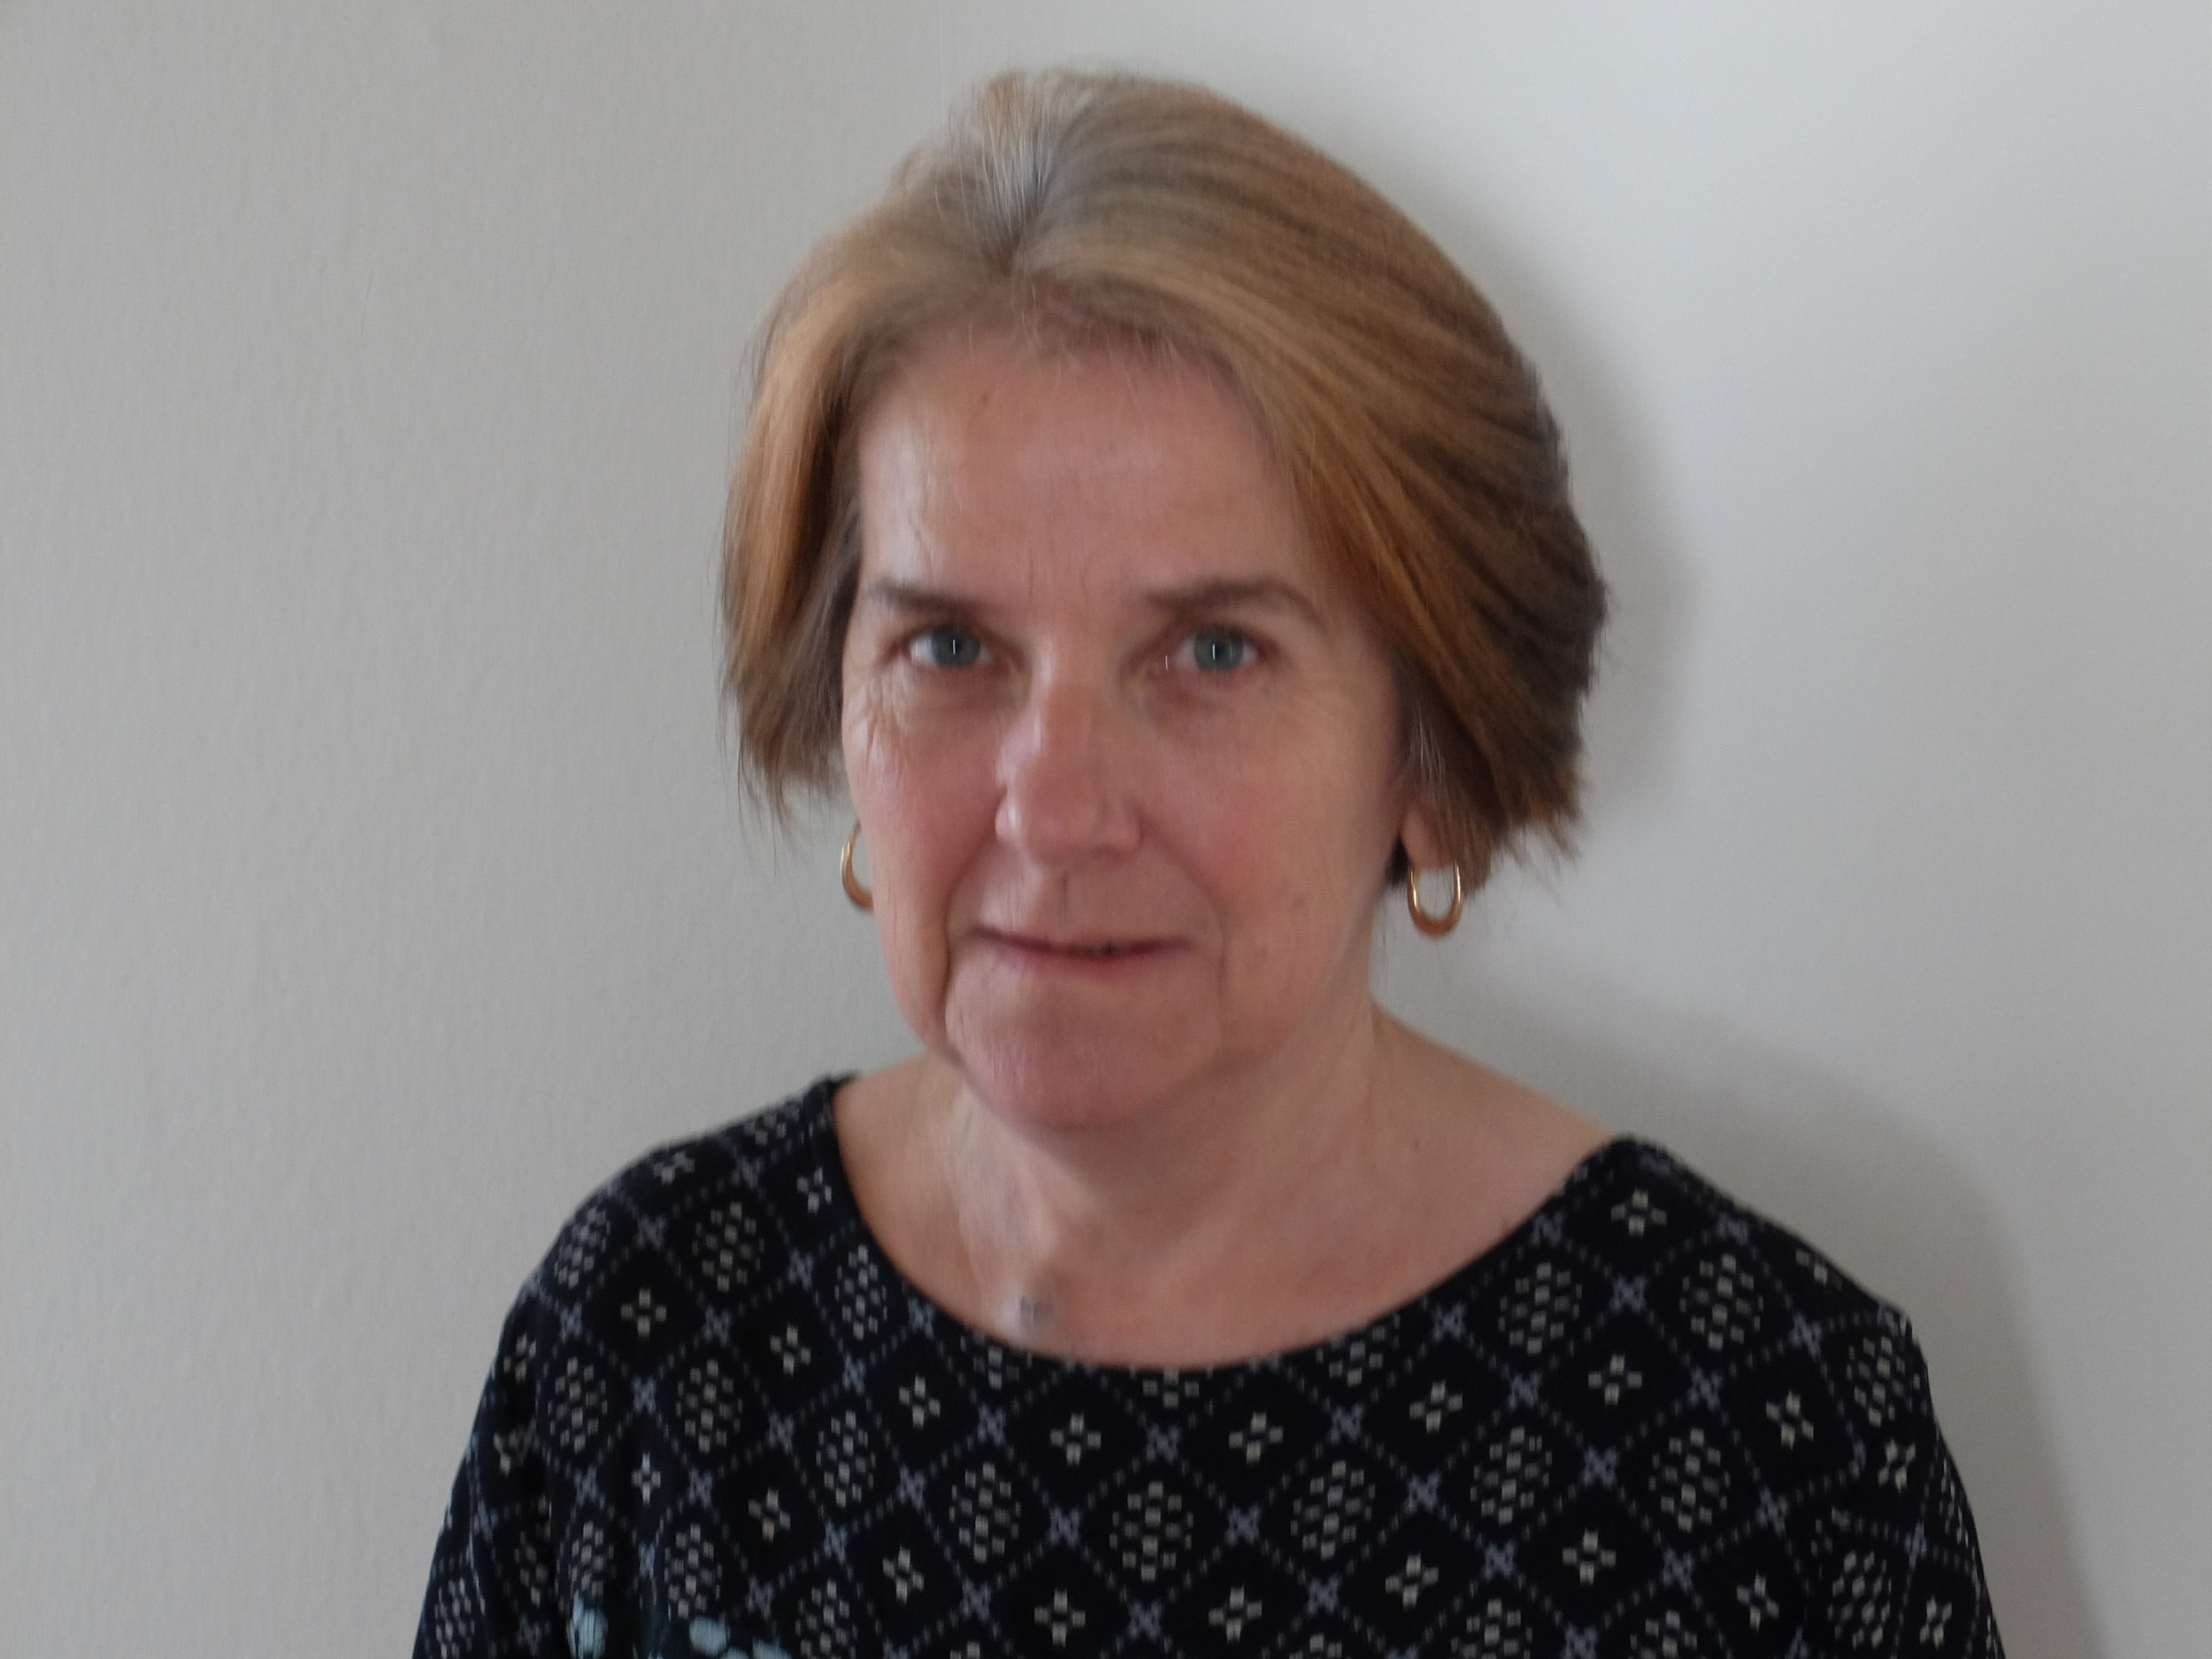 Anthea Turner is Crawford Medical Centre's General Manager and is the Complaints and Privacy Officer as well